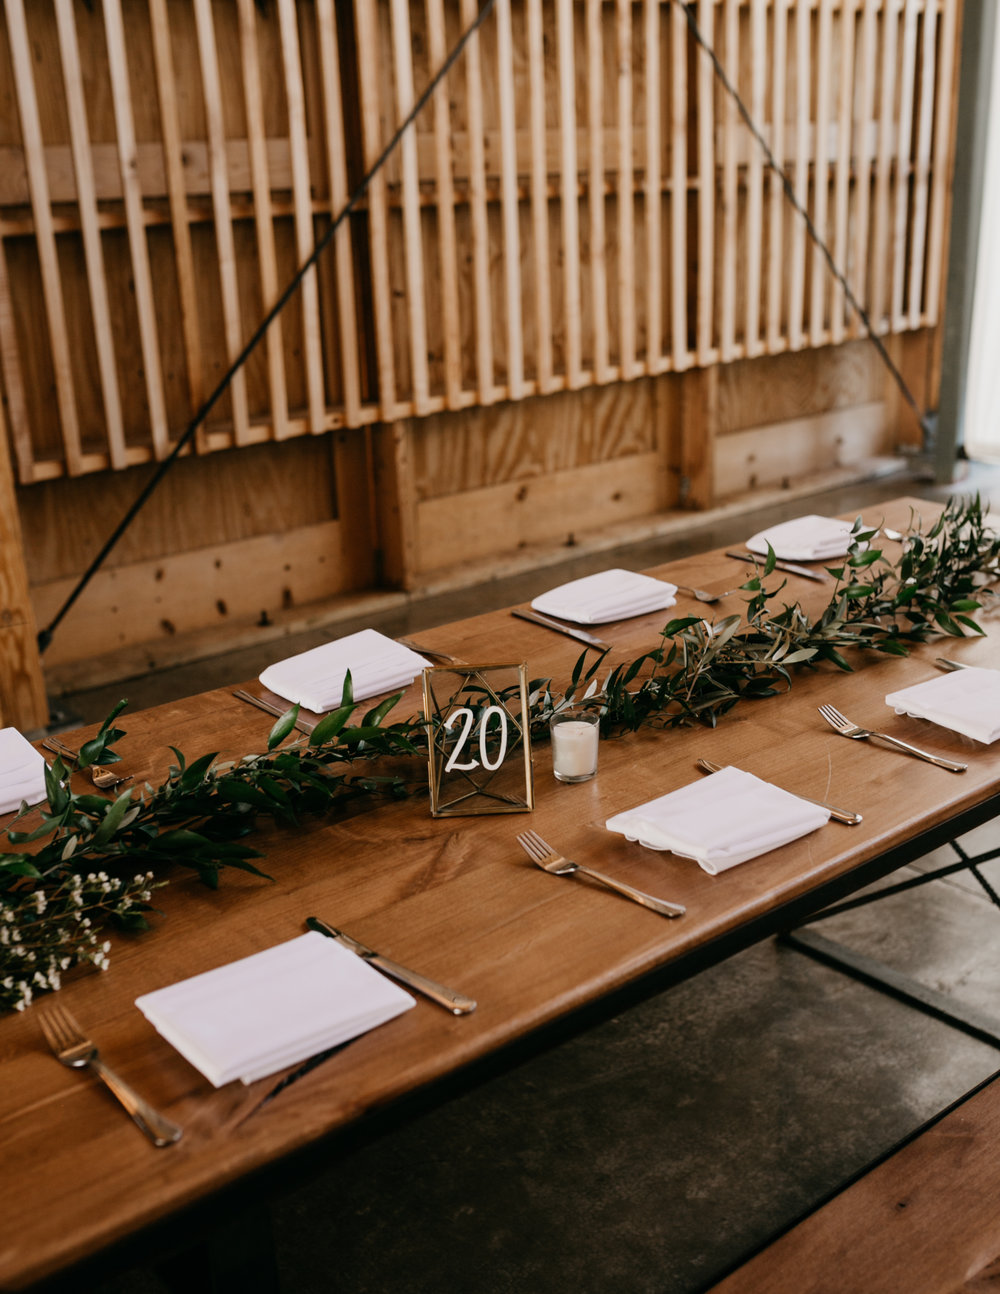 All You Need is Love and Doughnuts!  - with Tremaine Ranch - Arizona Wedding & Event, Vintage, Furniture, Tableware, & Specialty Rentals in Phoenix, Tucson, Flagstaff, Sedona, Tempe, Chandler, Mesa, Gilbert, Prescott, Payson24.jpg